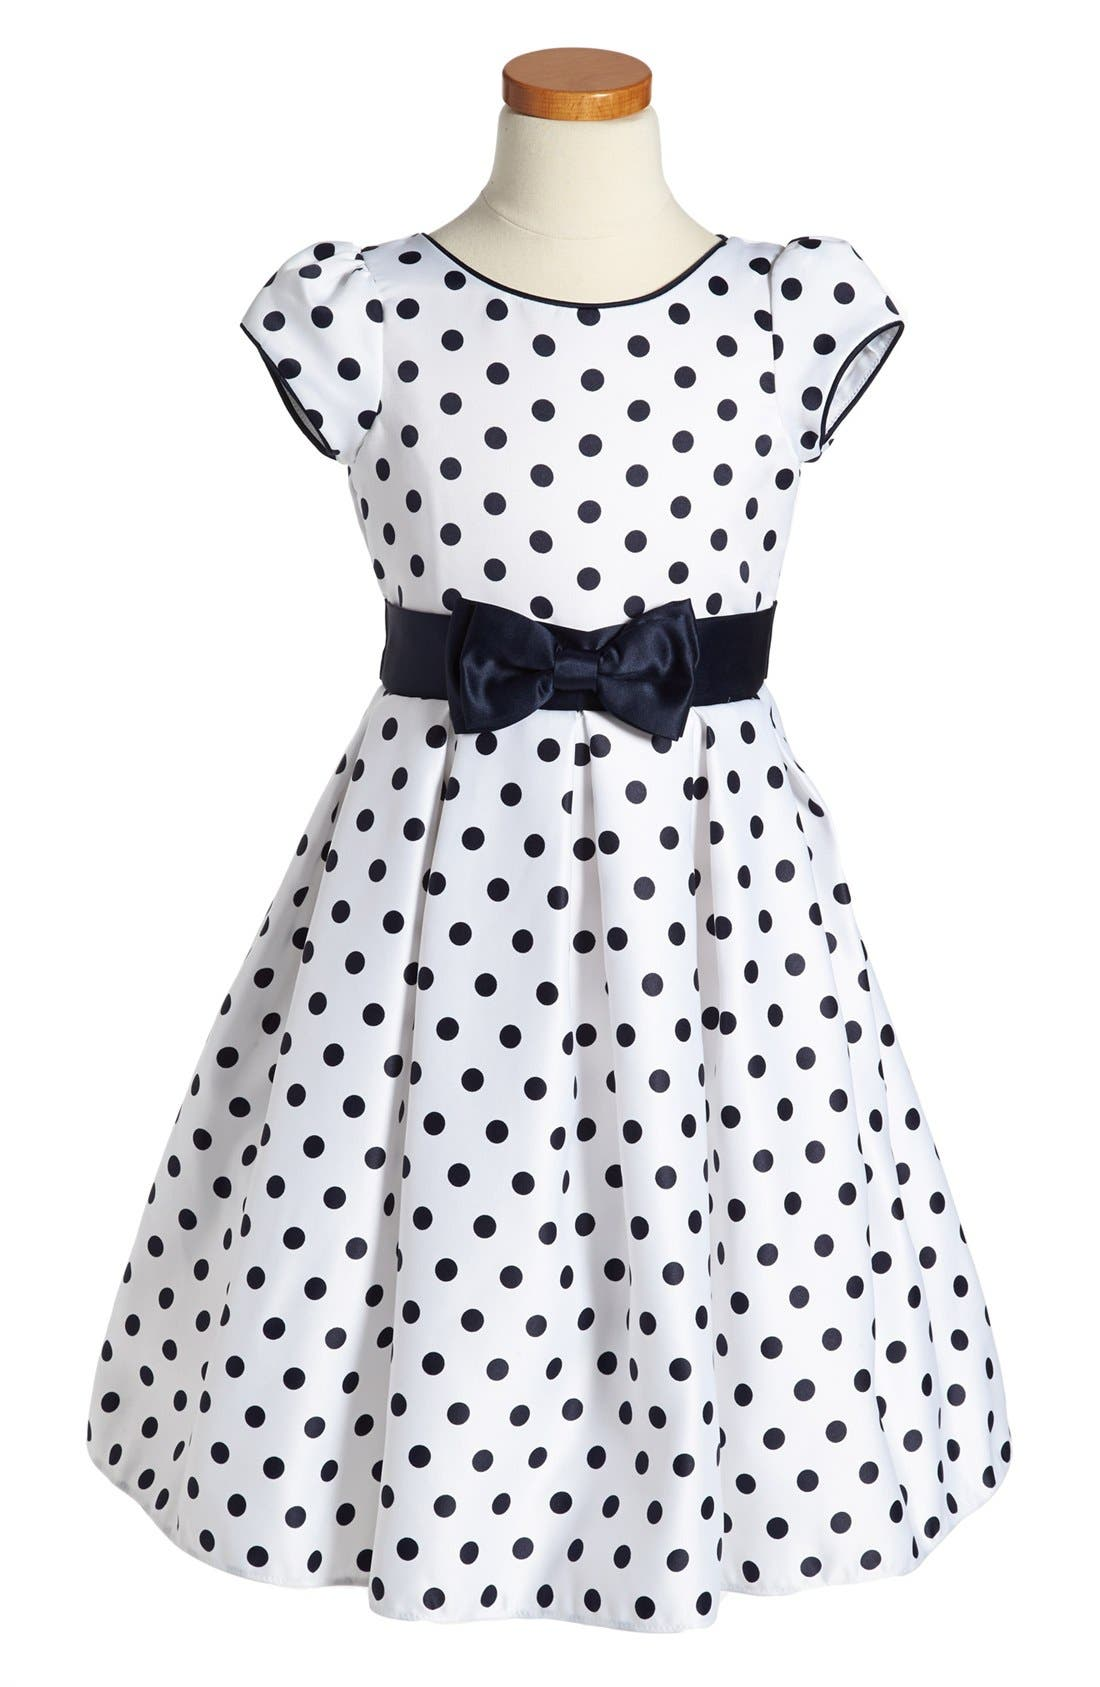 Alternate Image 1 Selected - Dorissa 'Dotty' Dress (Little Girls)